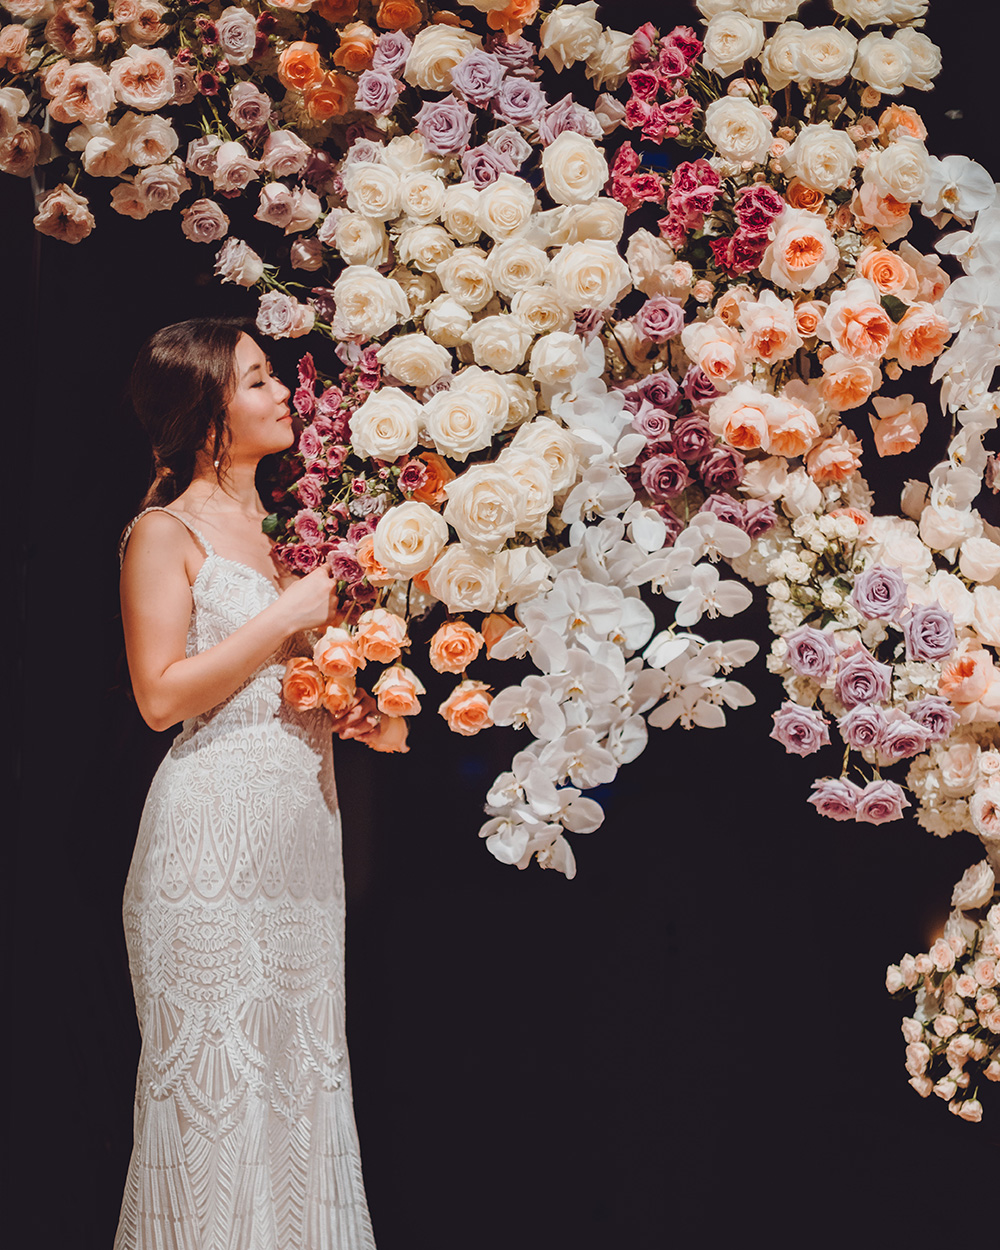 corinthian, houston, cranes, paper, unique, photography, romantic, reception, flowers, plants